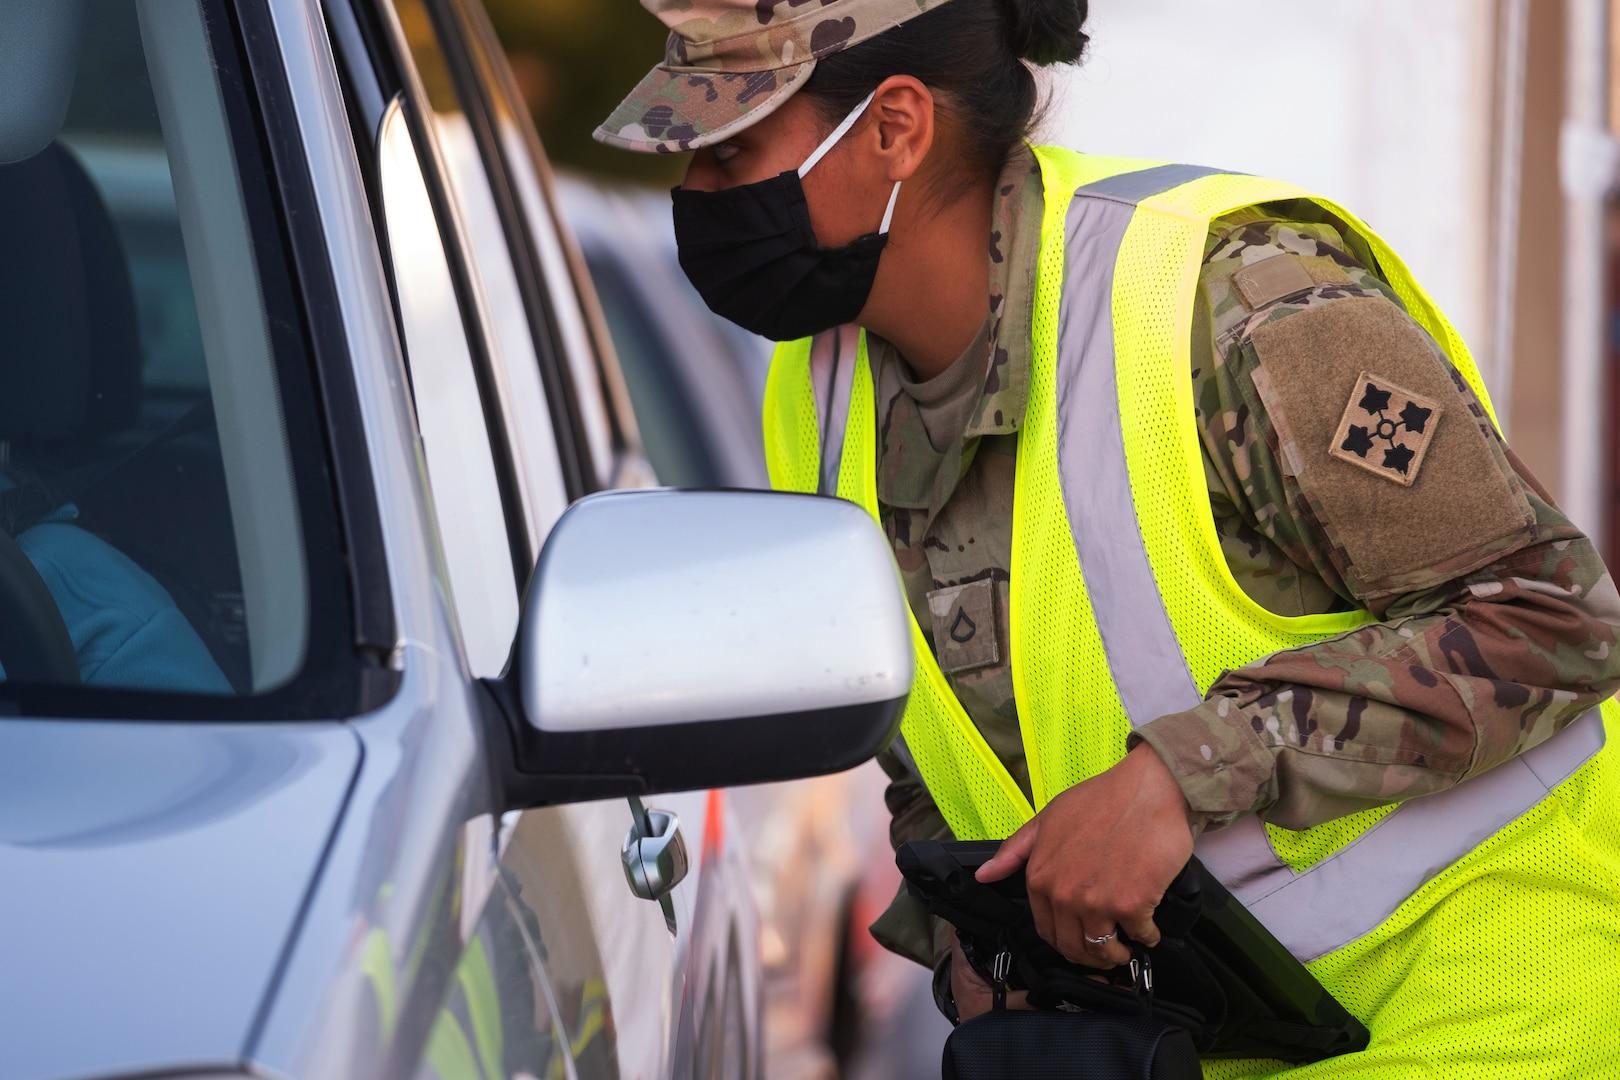 A female soldier wearing a face mask leans into the window of a vehicle.